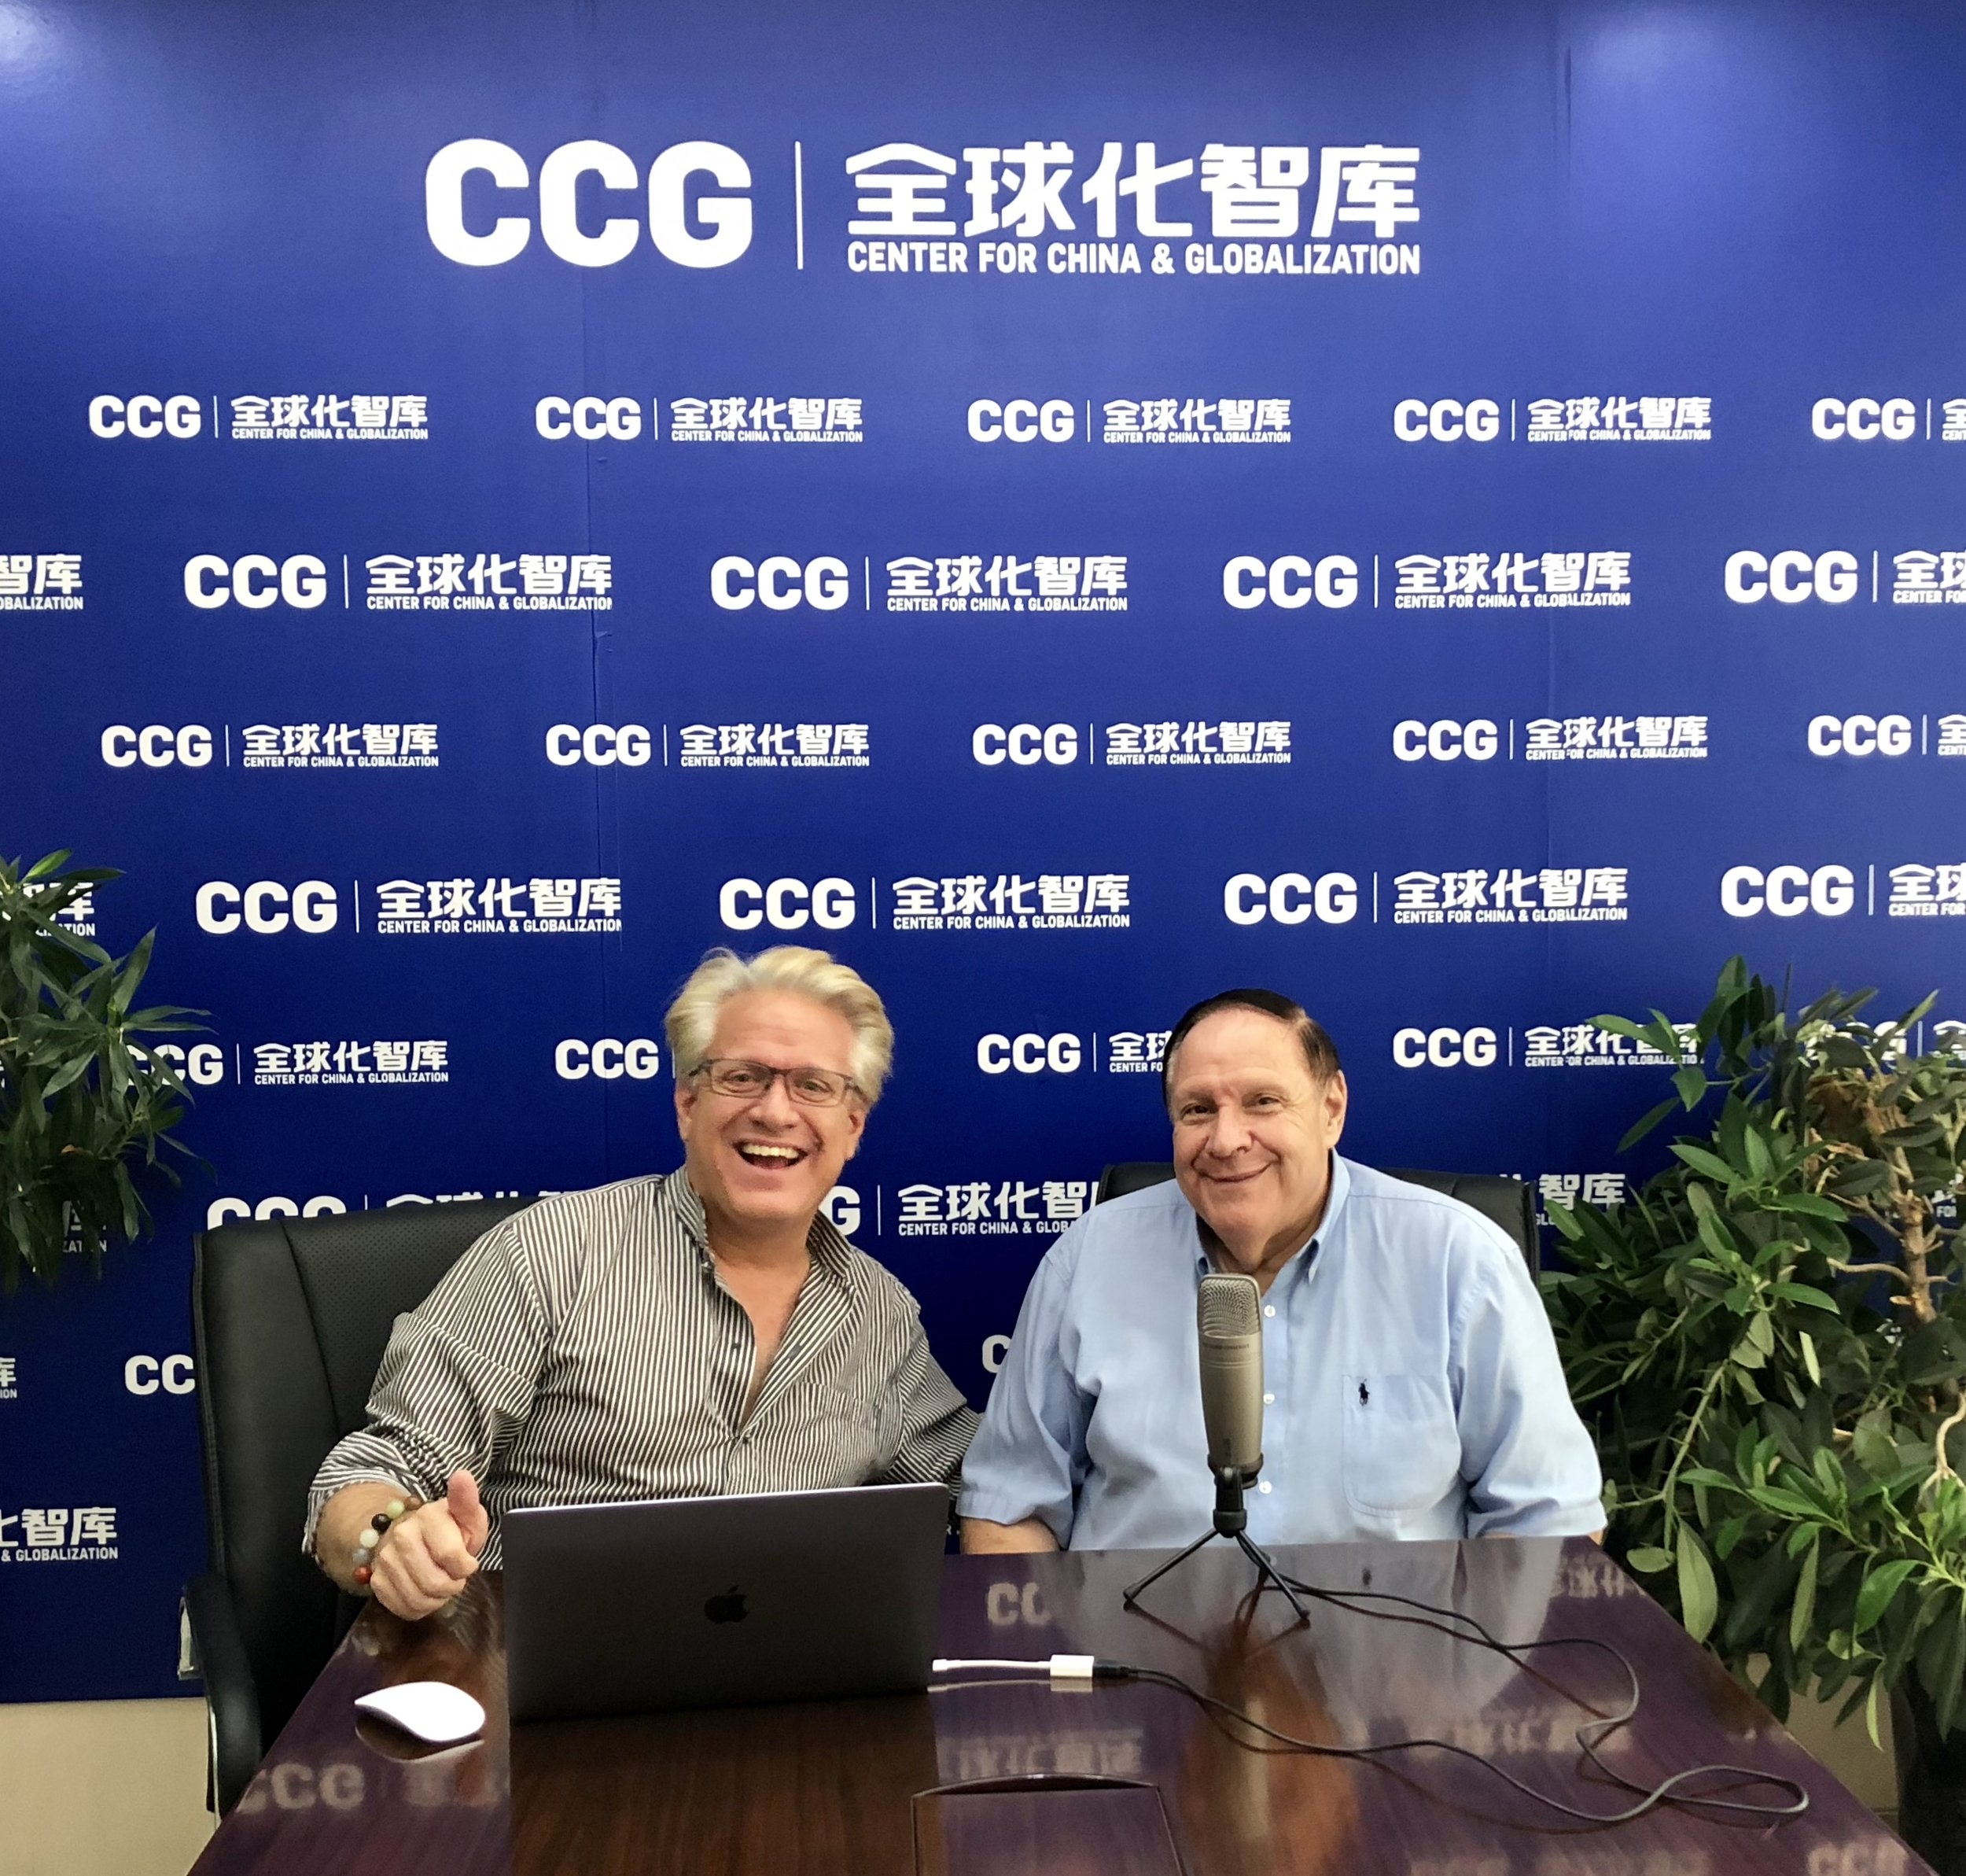 Recording this podcast at the CCG think tank in Beijing